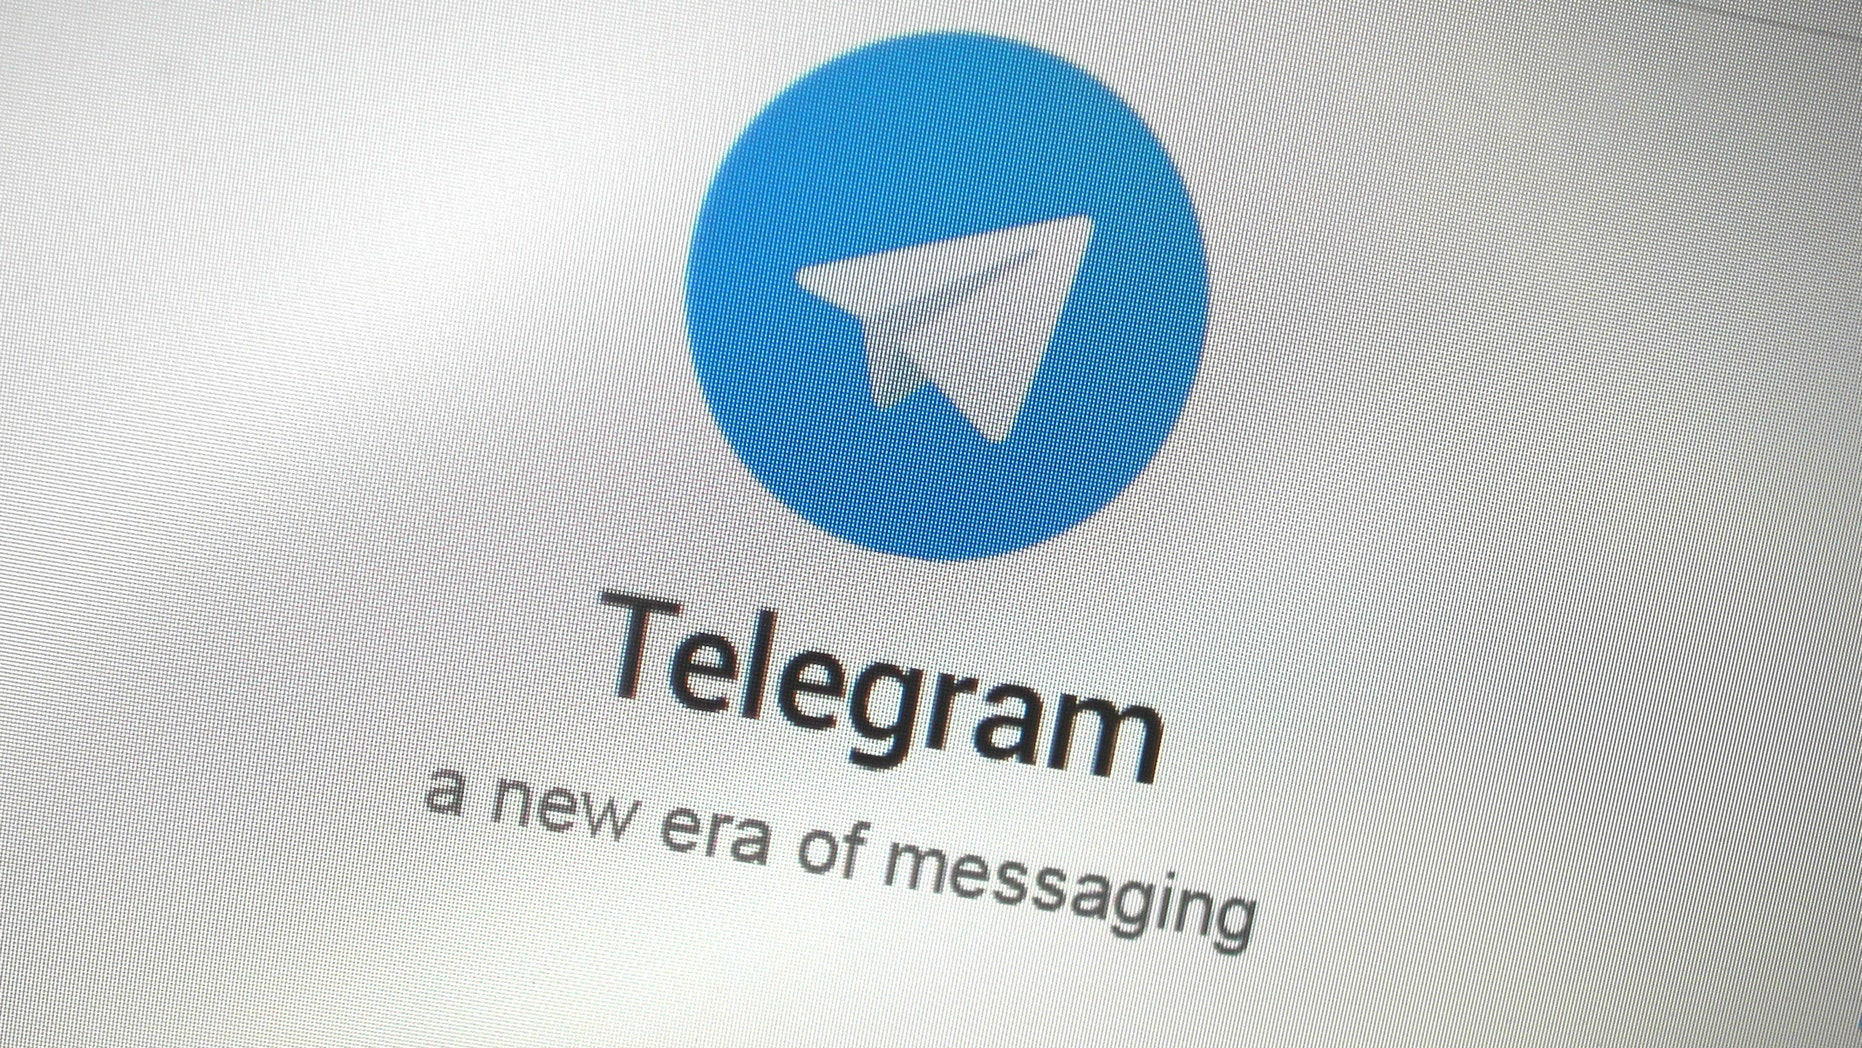 File photo - The Telegram messaging app logo is seen on a website in Singapore Nov. 19, 2015. (REUTERS/Thomas White)